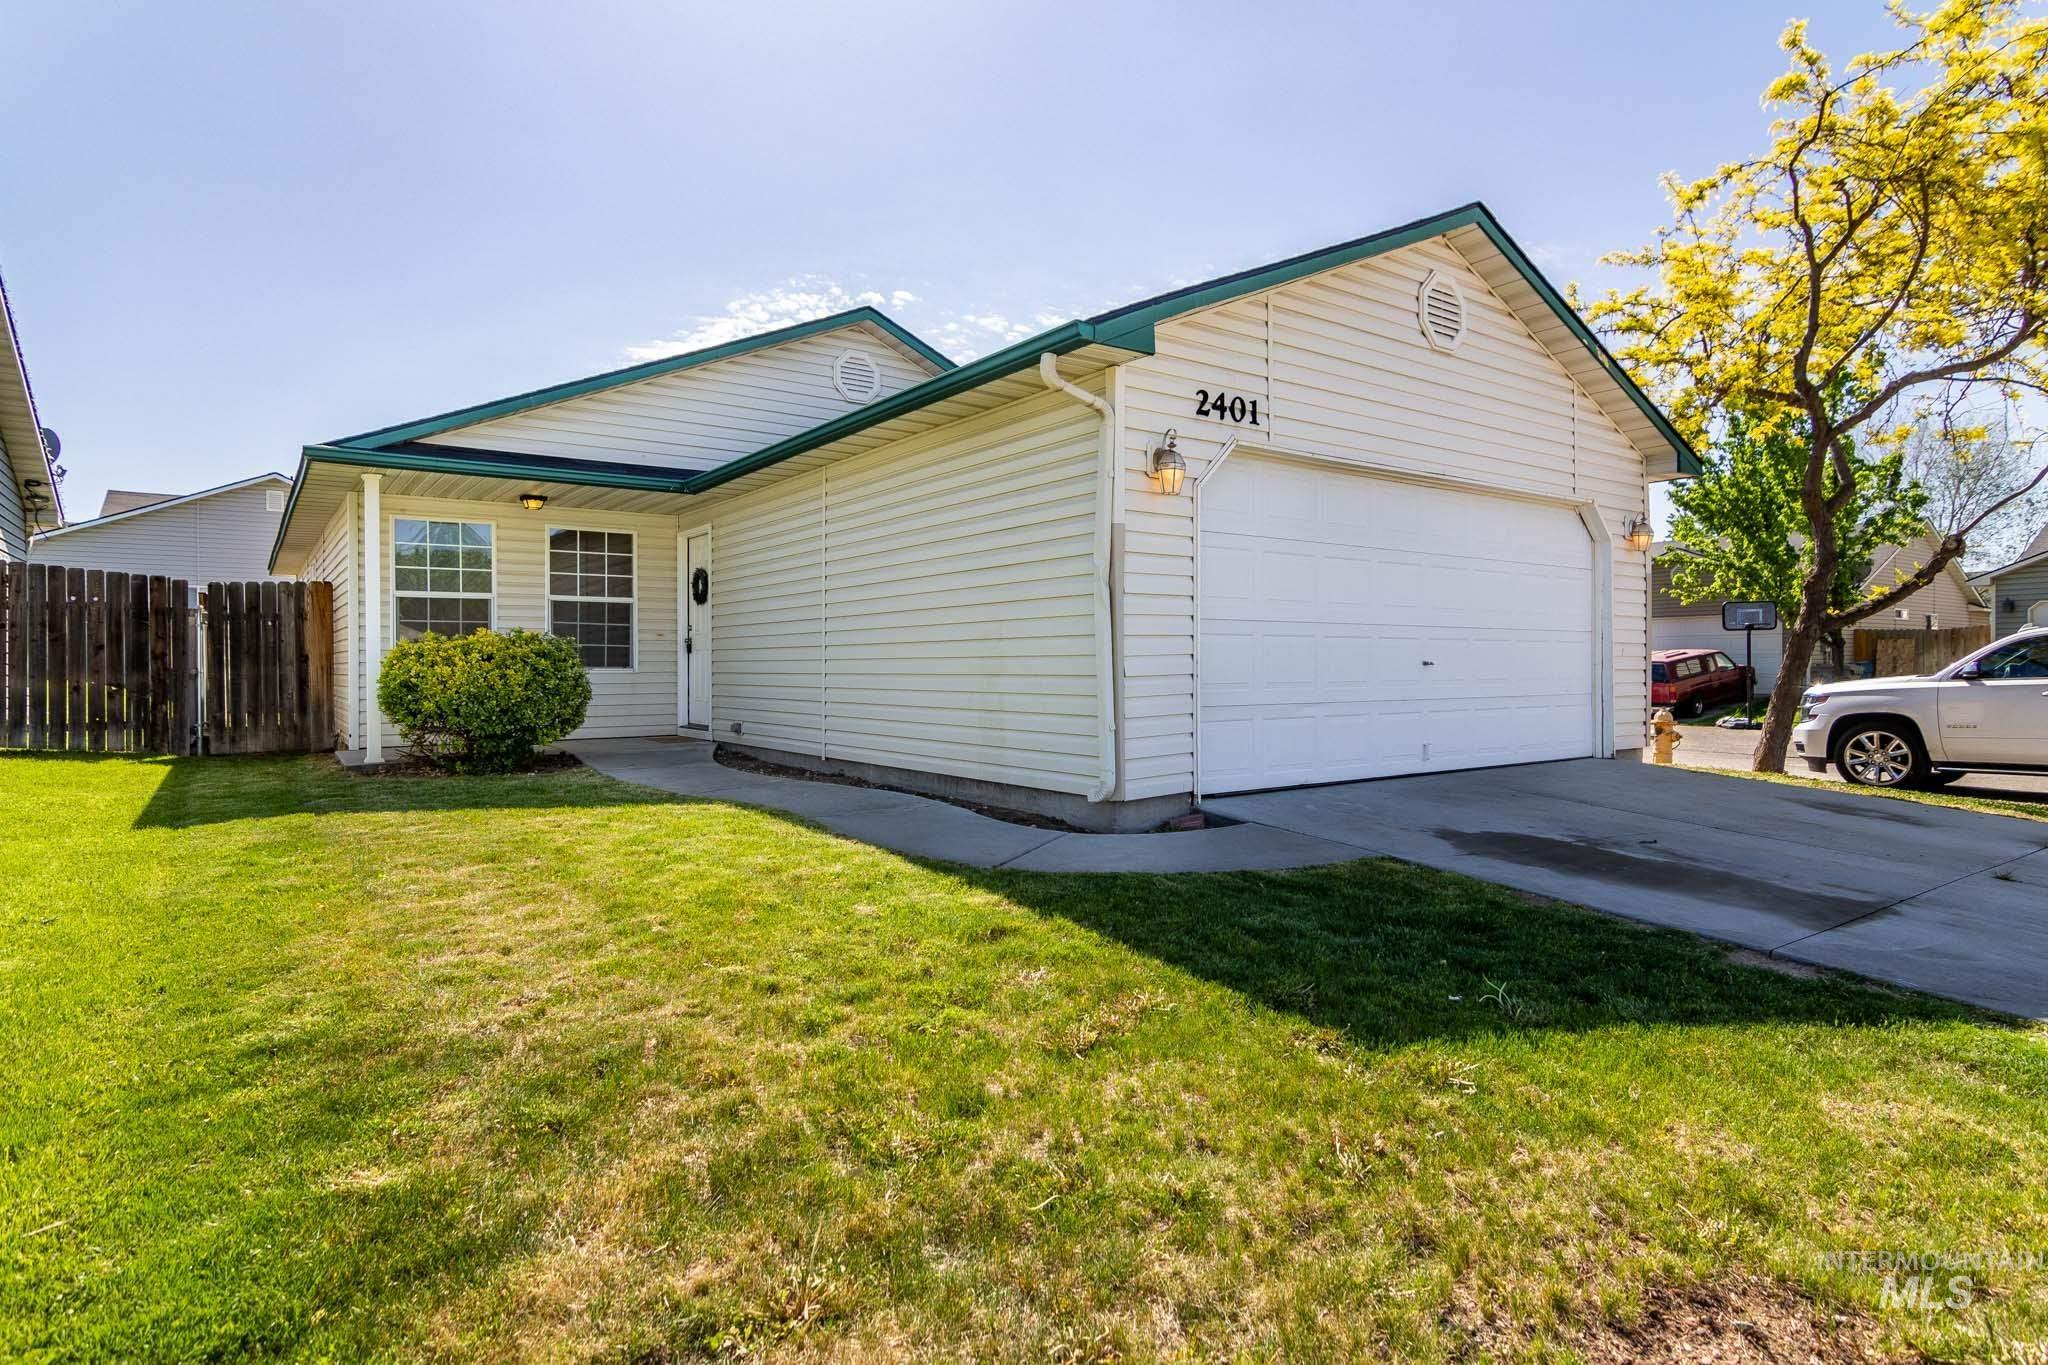 2401 E Nutmeg Lane Property Photo - Nampa, ID real estate listing